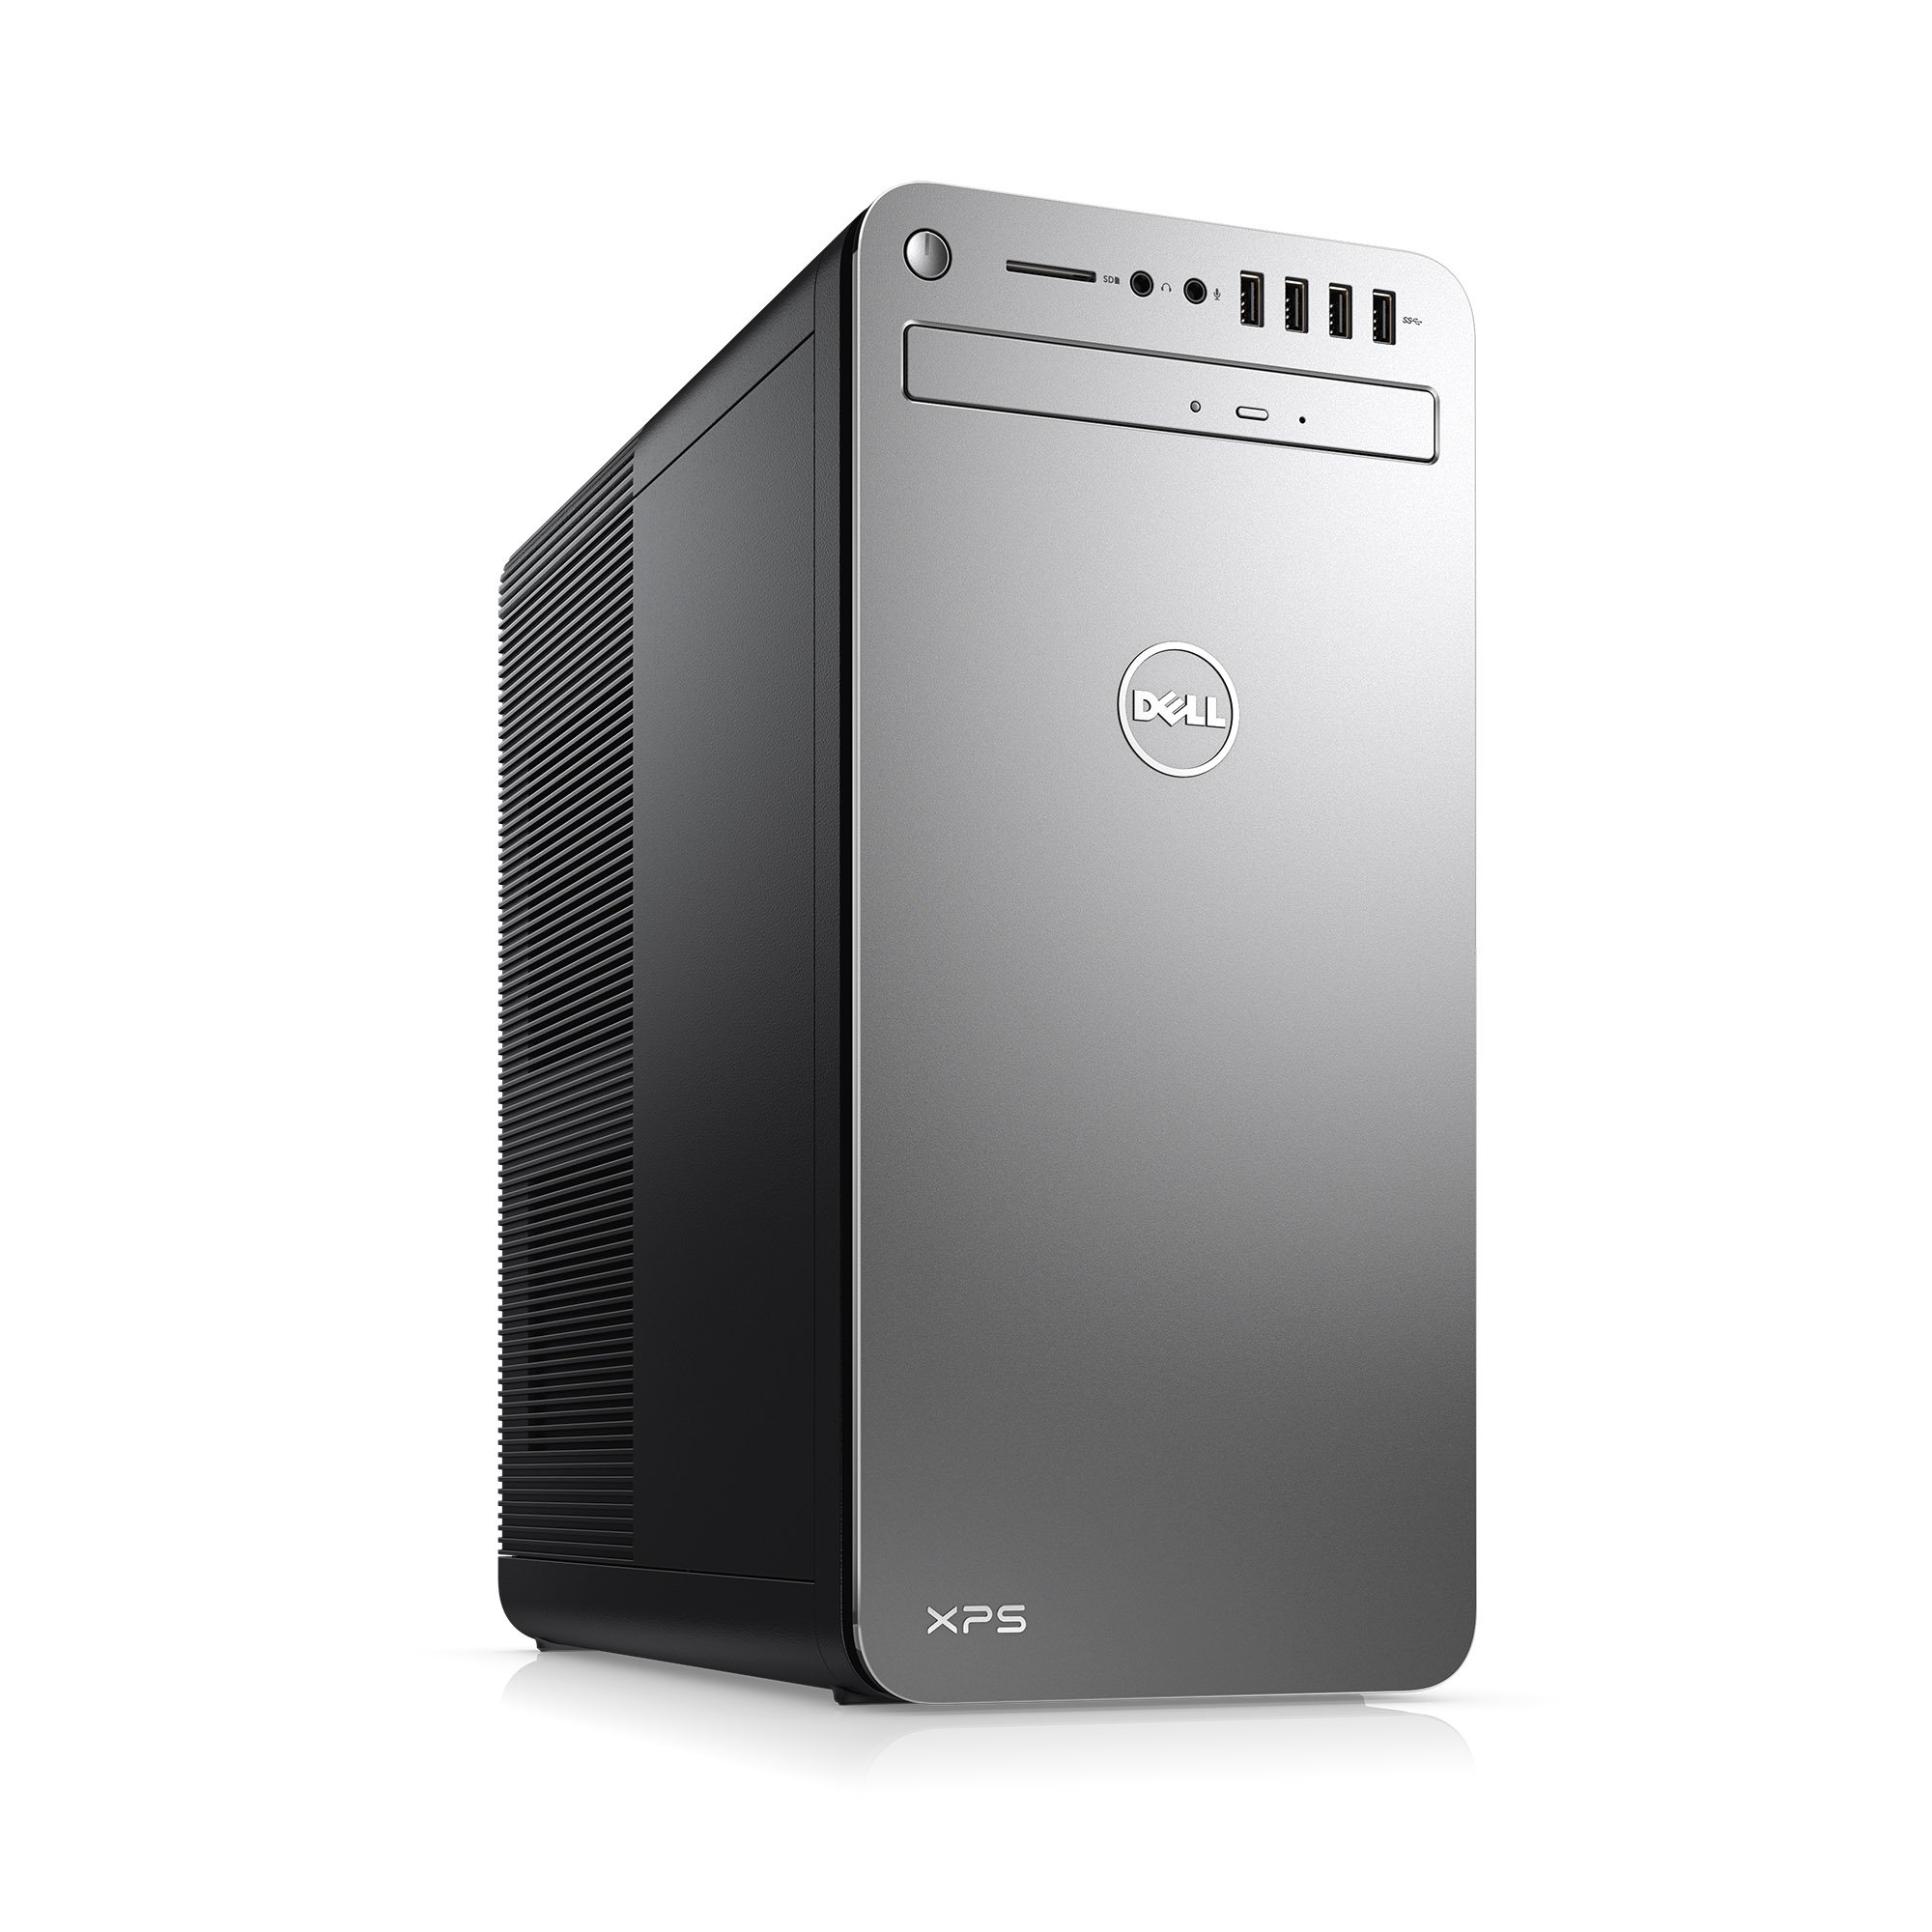 Dell XPS 8920 XPS8920-7529SLV-PUS Tower Desktop (Silver) by Dell (Image #3)